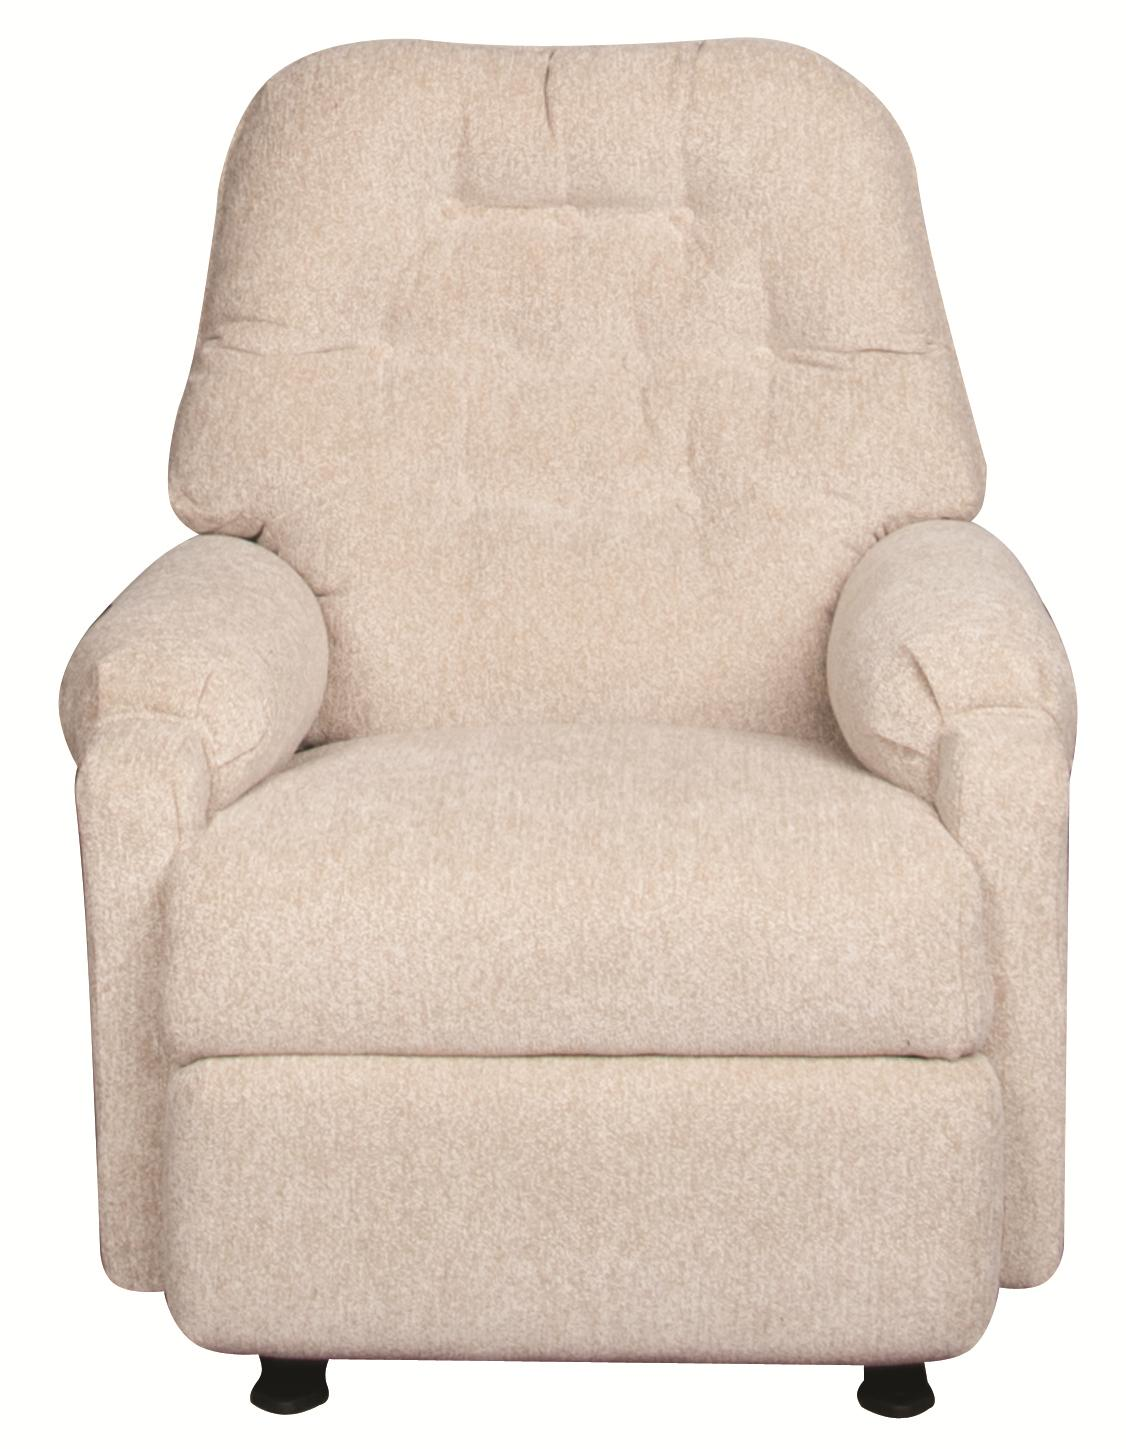 Morris Home Furnishings Roselyn Roselyn Power Wall Recliner - Item Number: 188826928